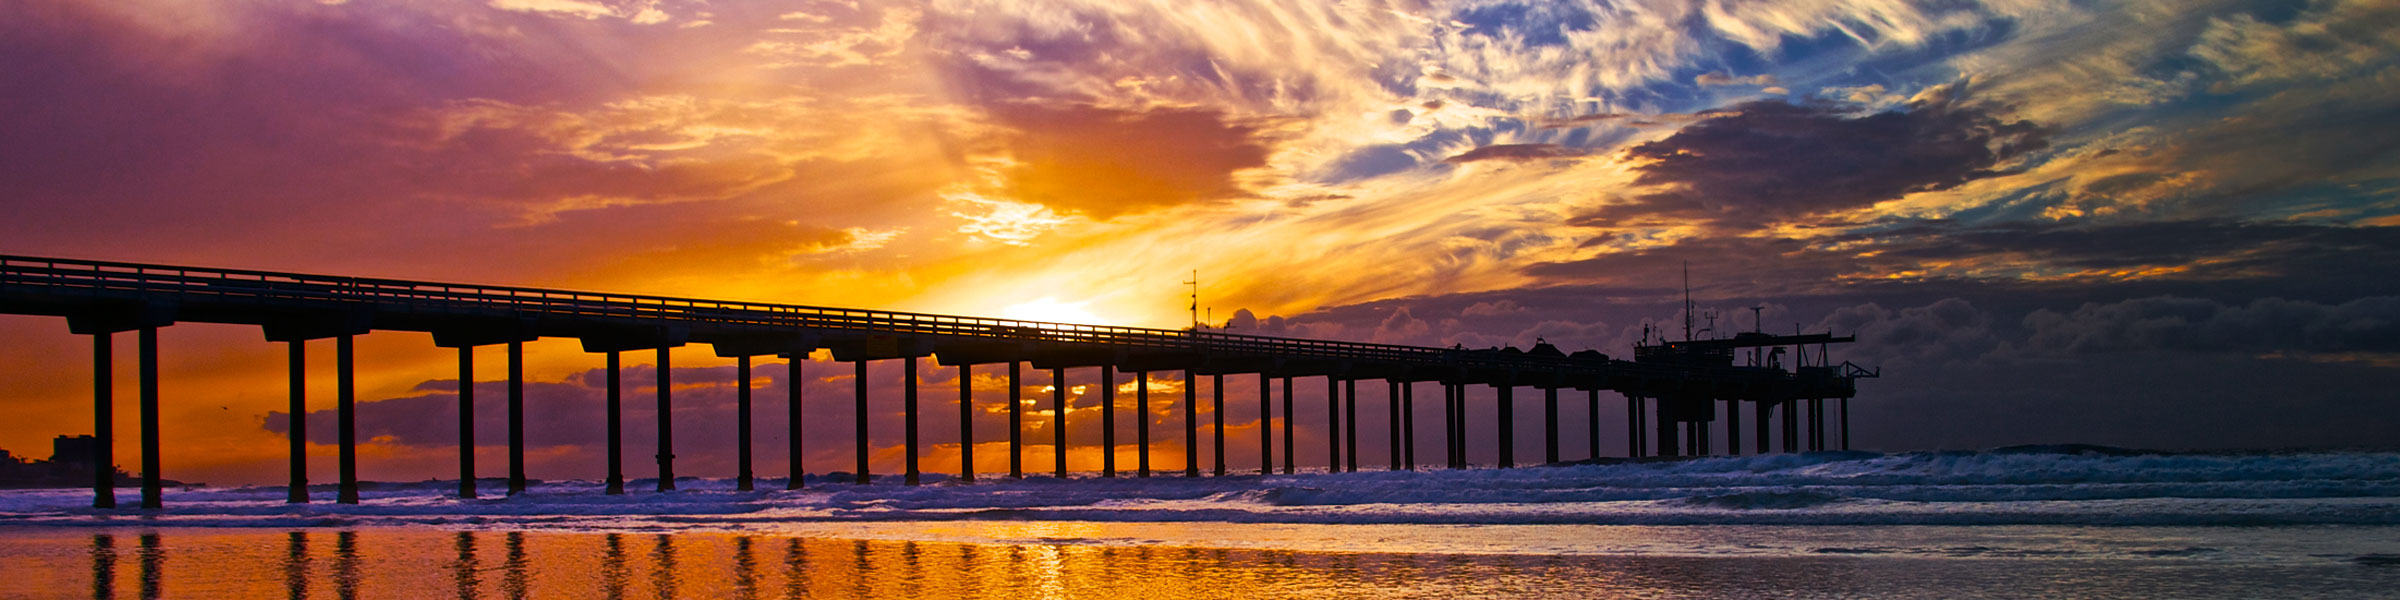 Scripps Pier silhouetted against orange sunset